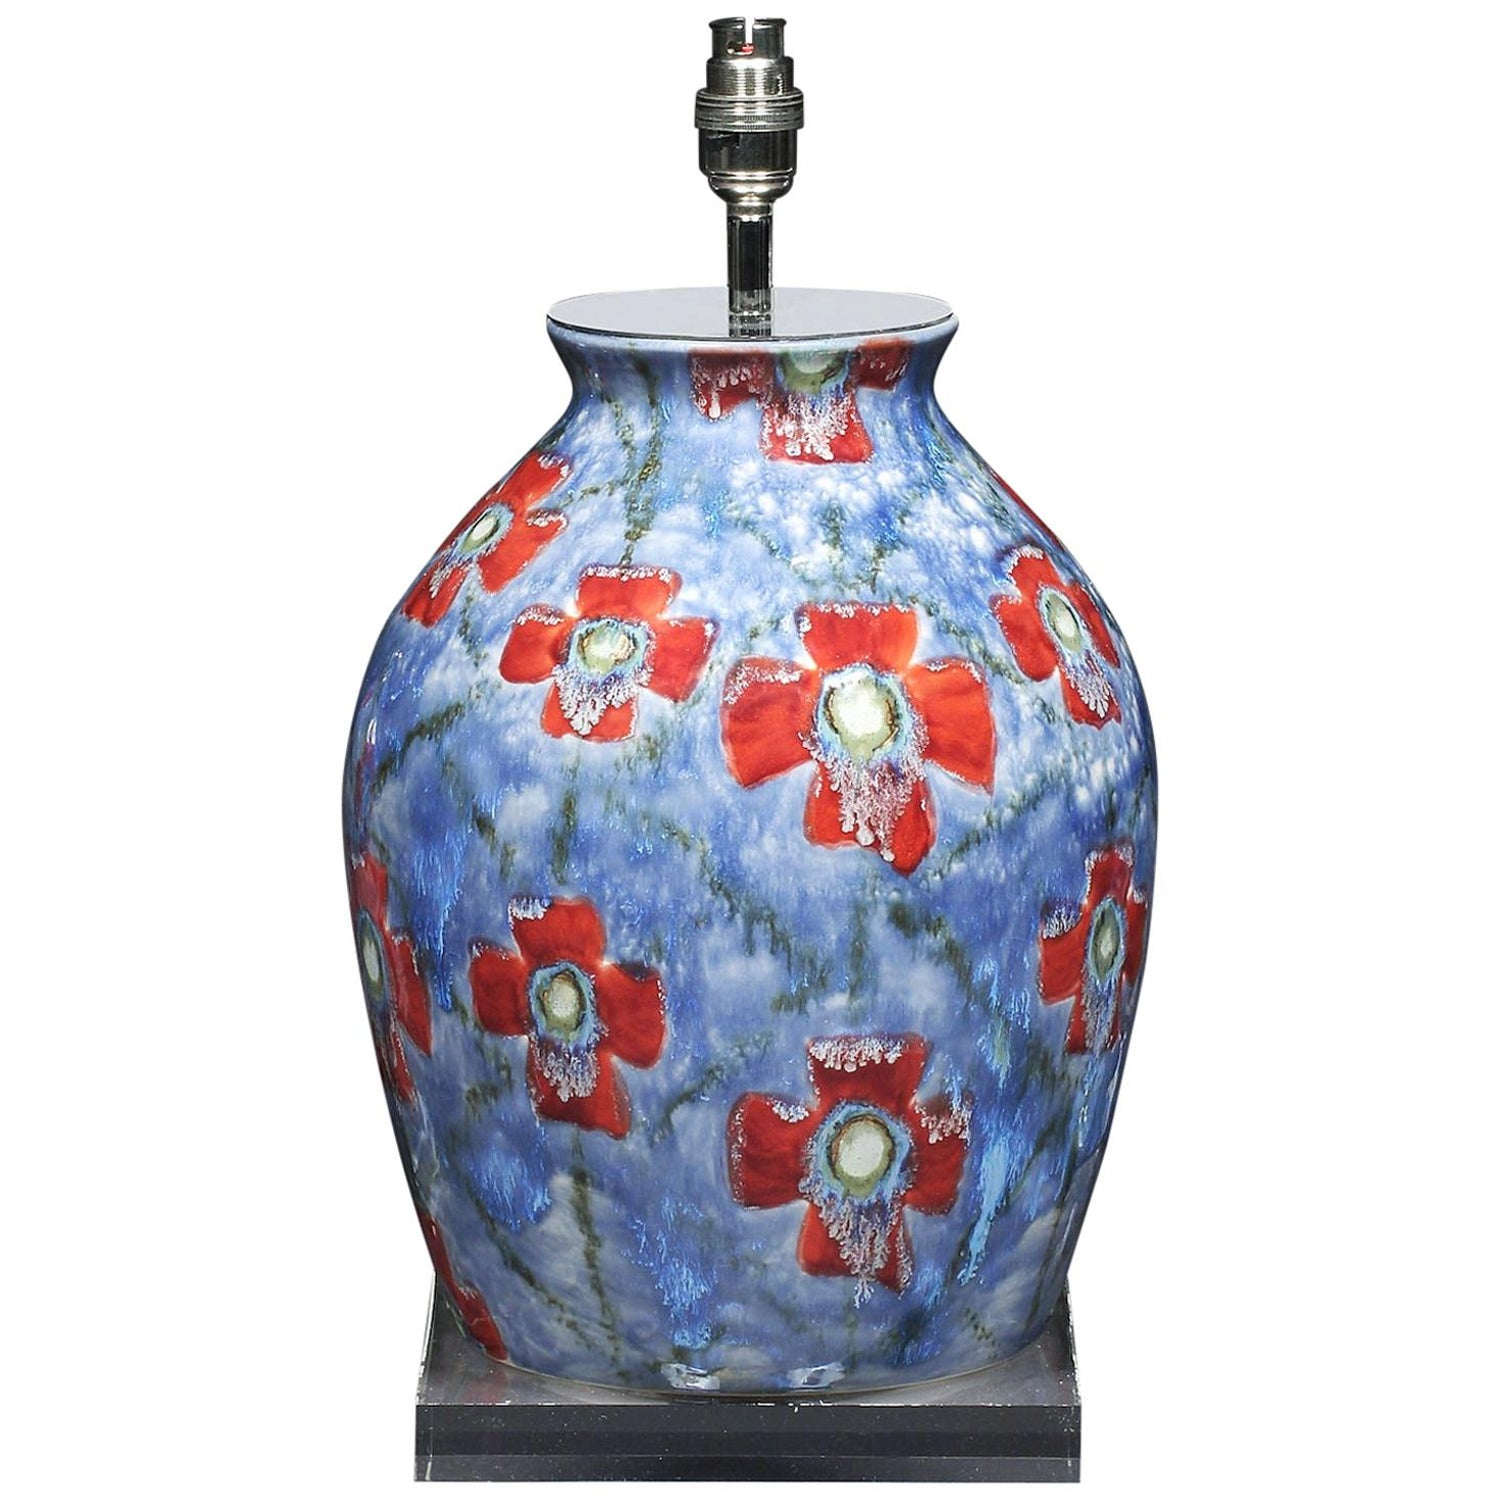 Lamp Table Cobridge Poppy and Ice Wildflower Vase Blue Red Green White